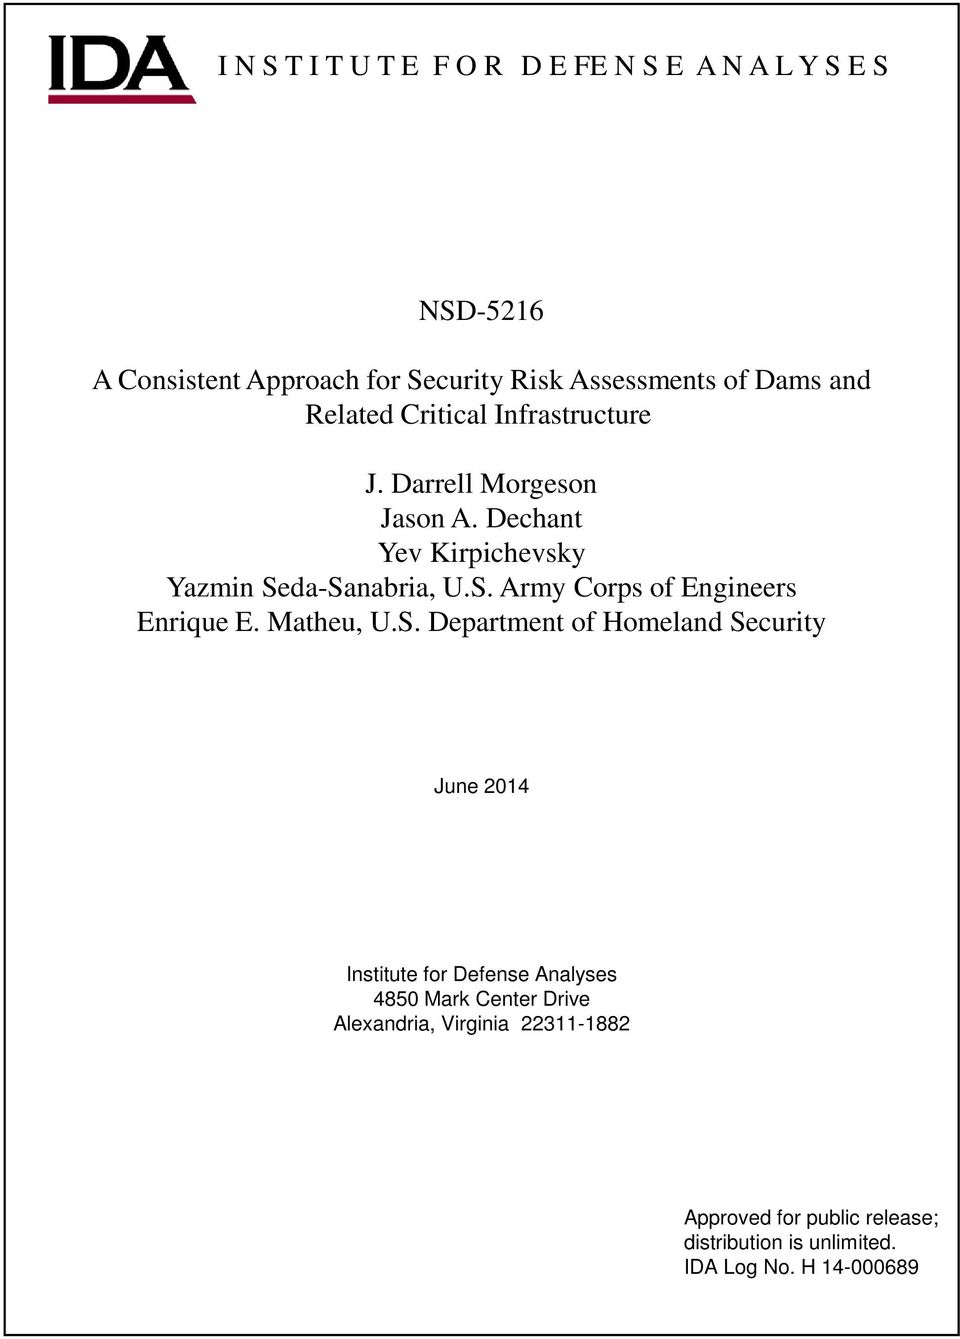 da-Sanabria, U.S. Army Corps of Engineers Enrique E. Matheu, U.S. Department of Homeland Security June 2014 Institute for